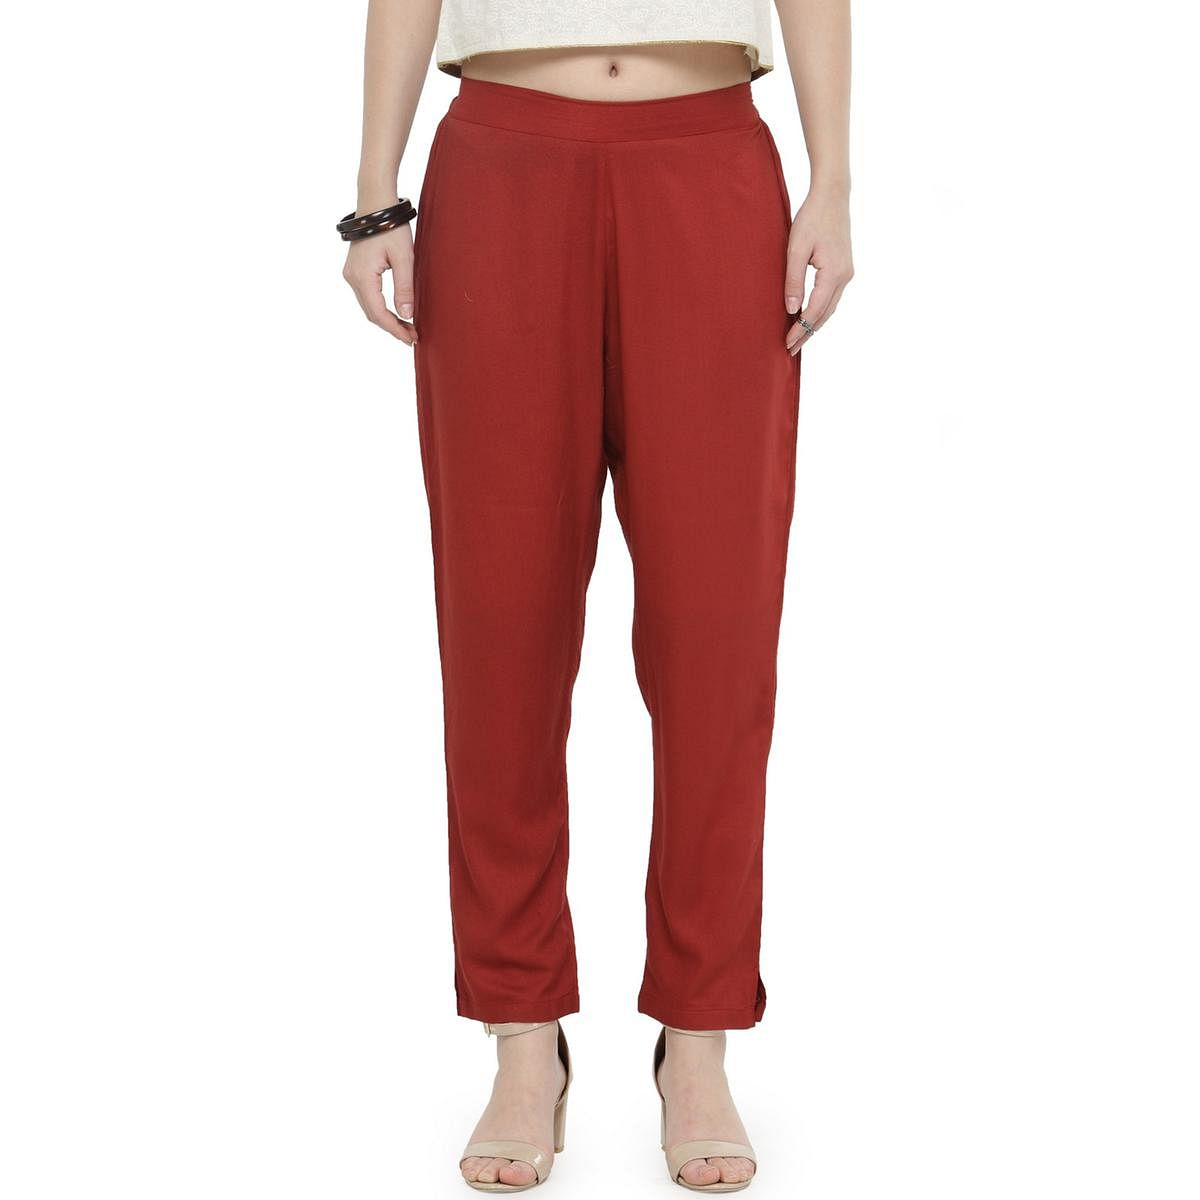 Maroon Casual Wear Cotton Pant